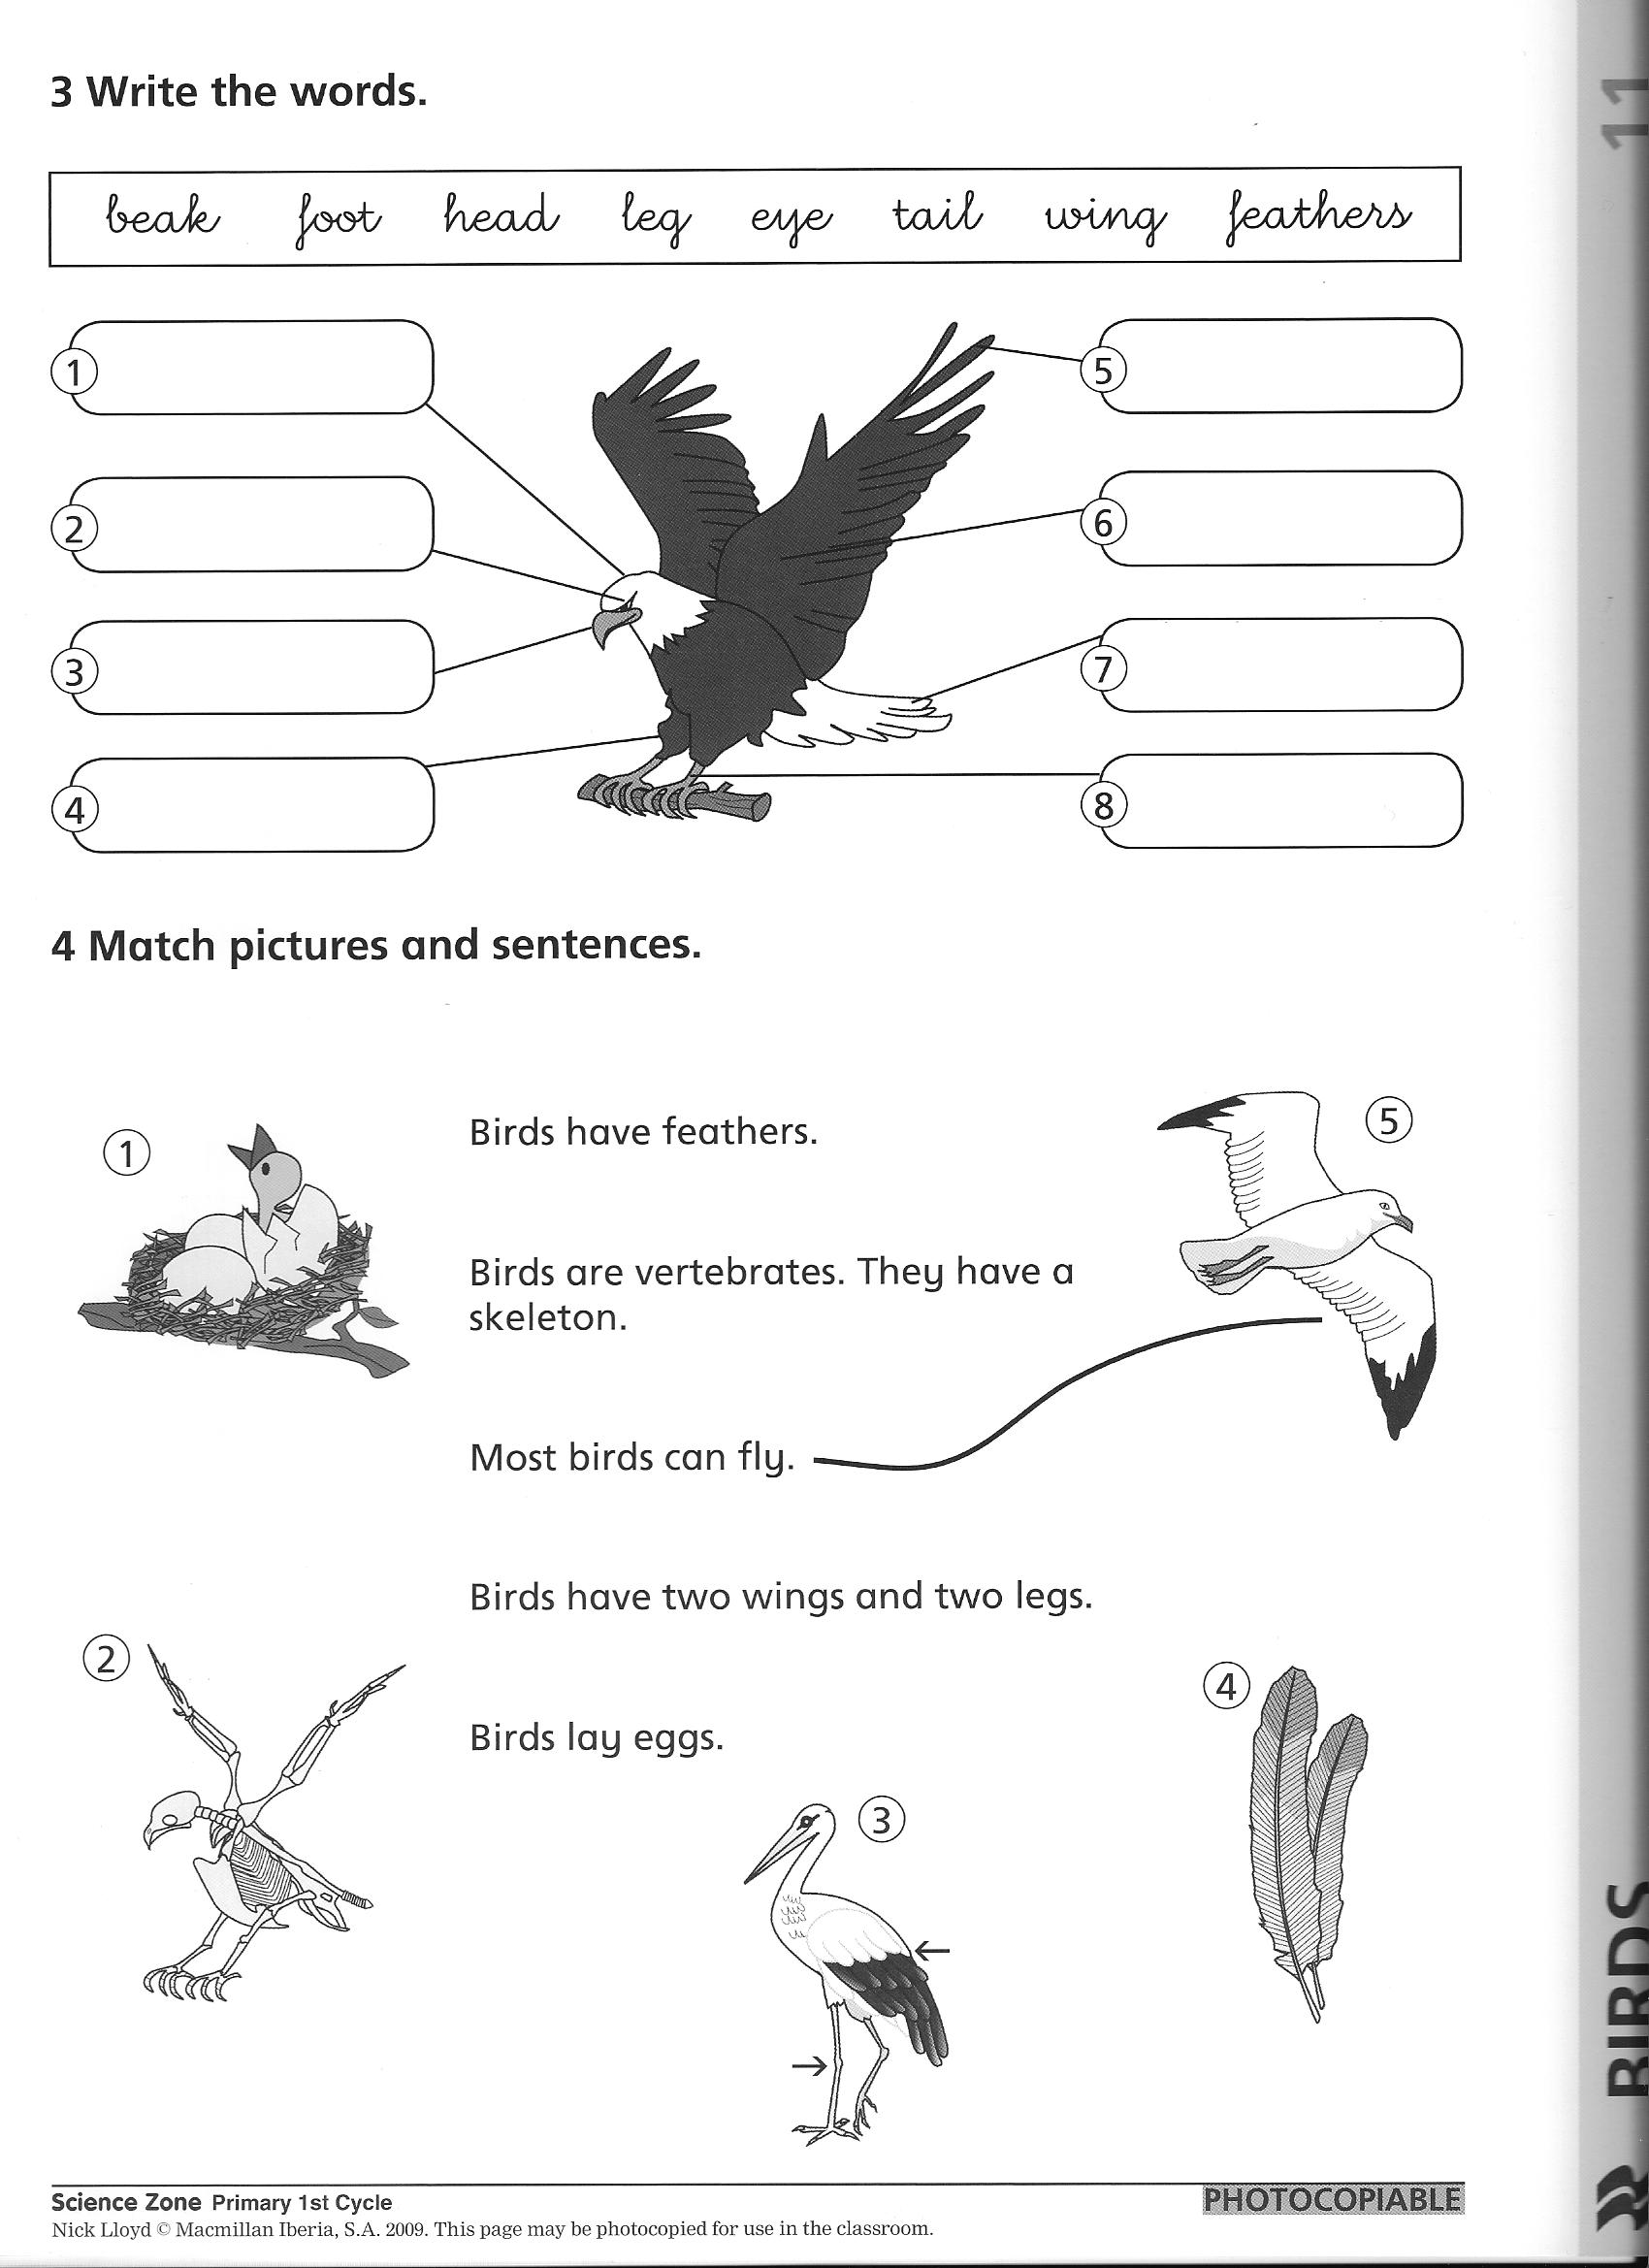 14 Best Images of Elementary Animal Classification